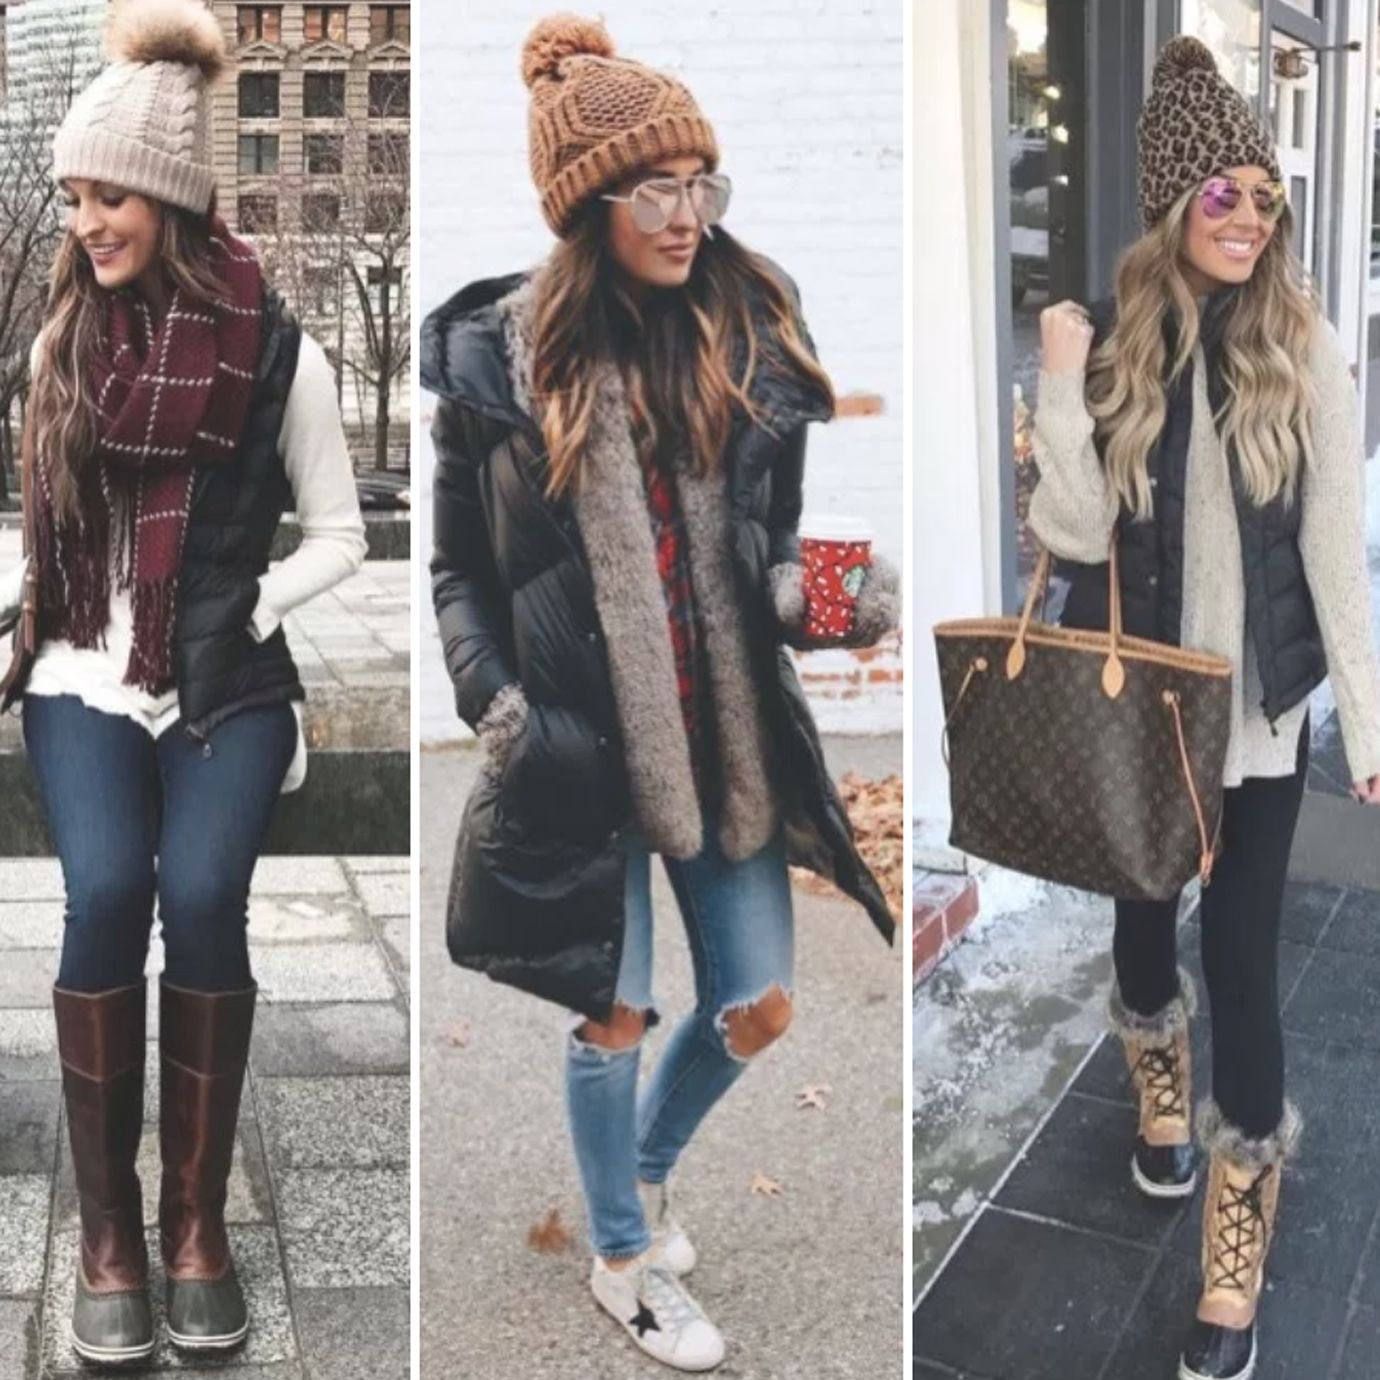 Click Below To Watch: Classy Winter Outfit Ideas For Women